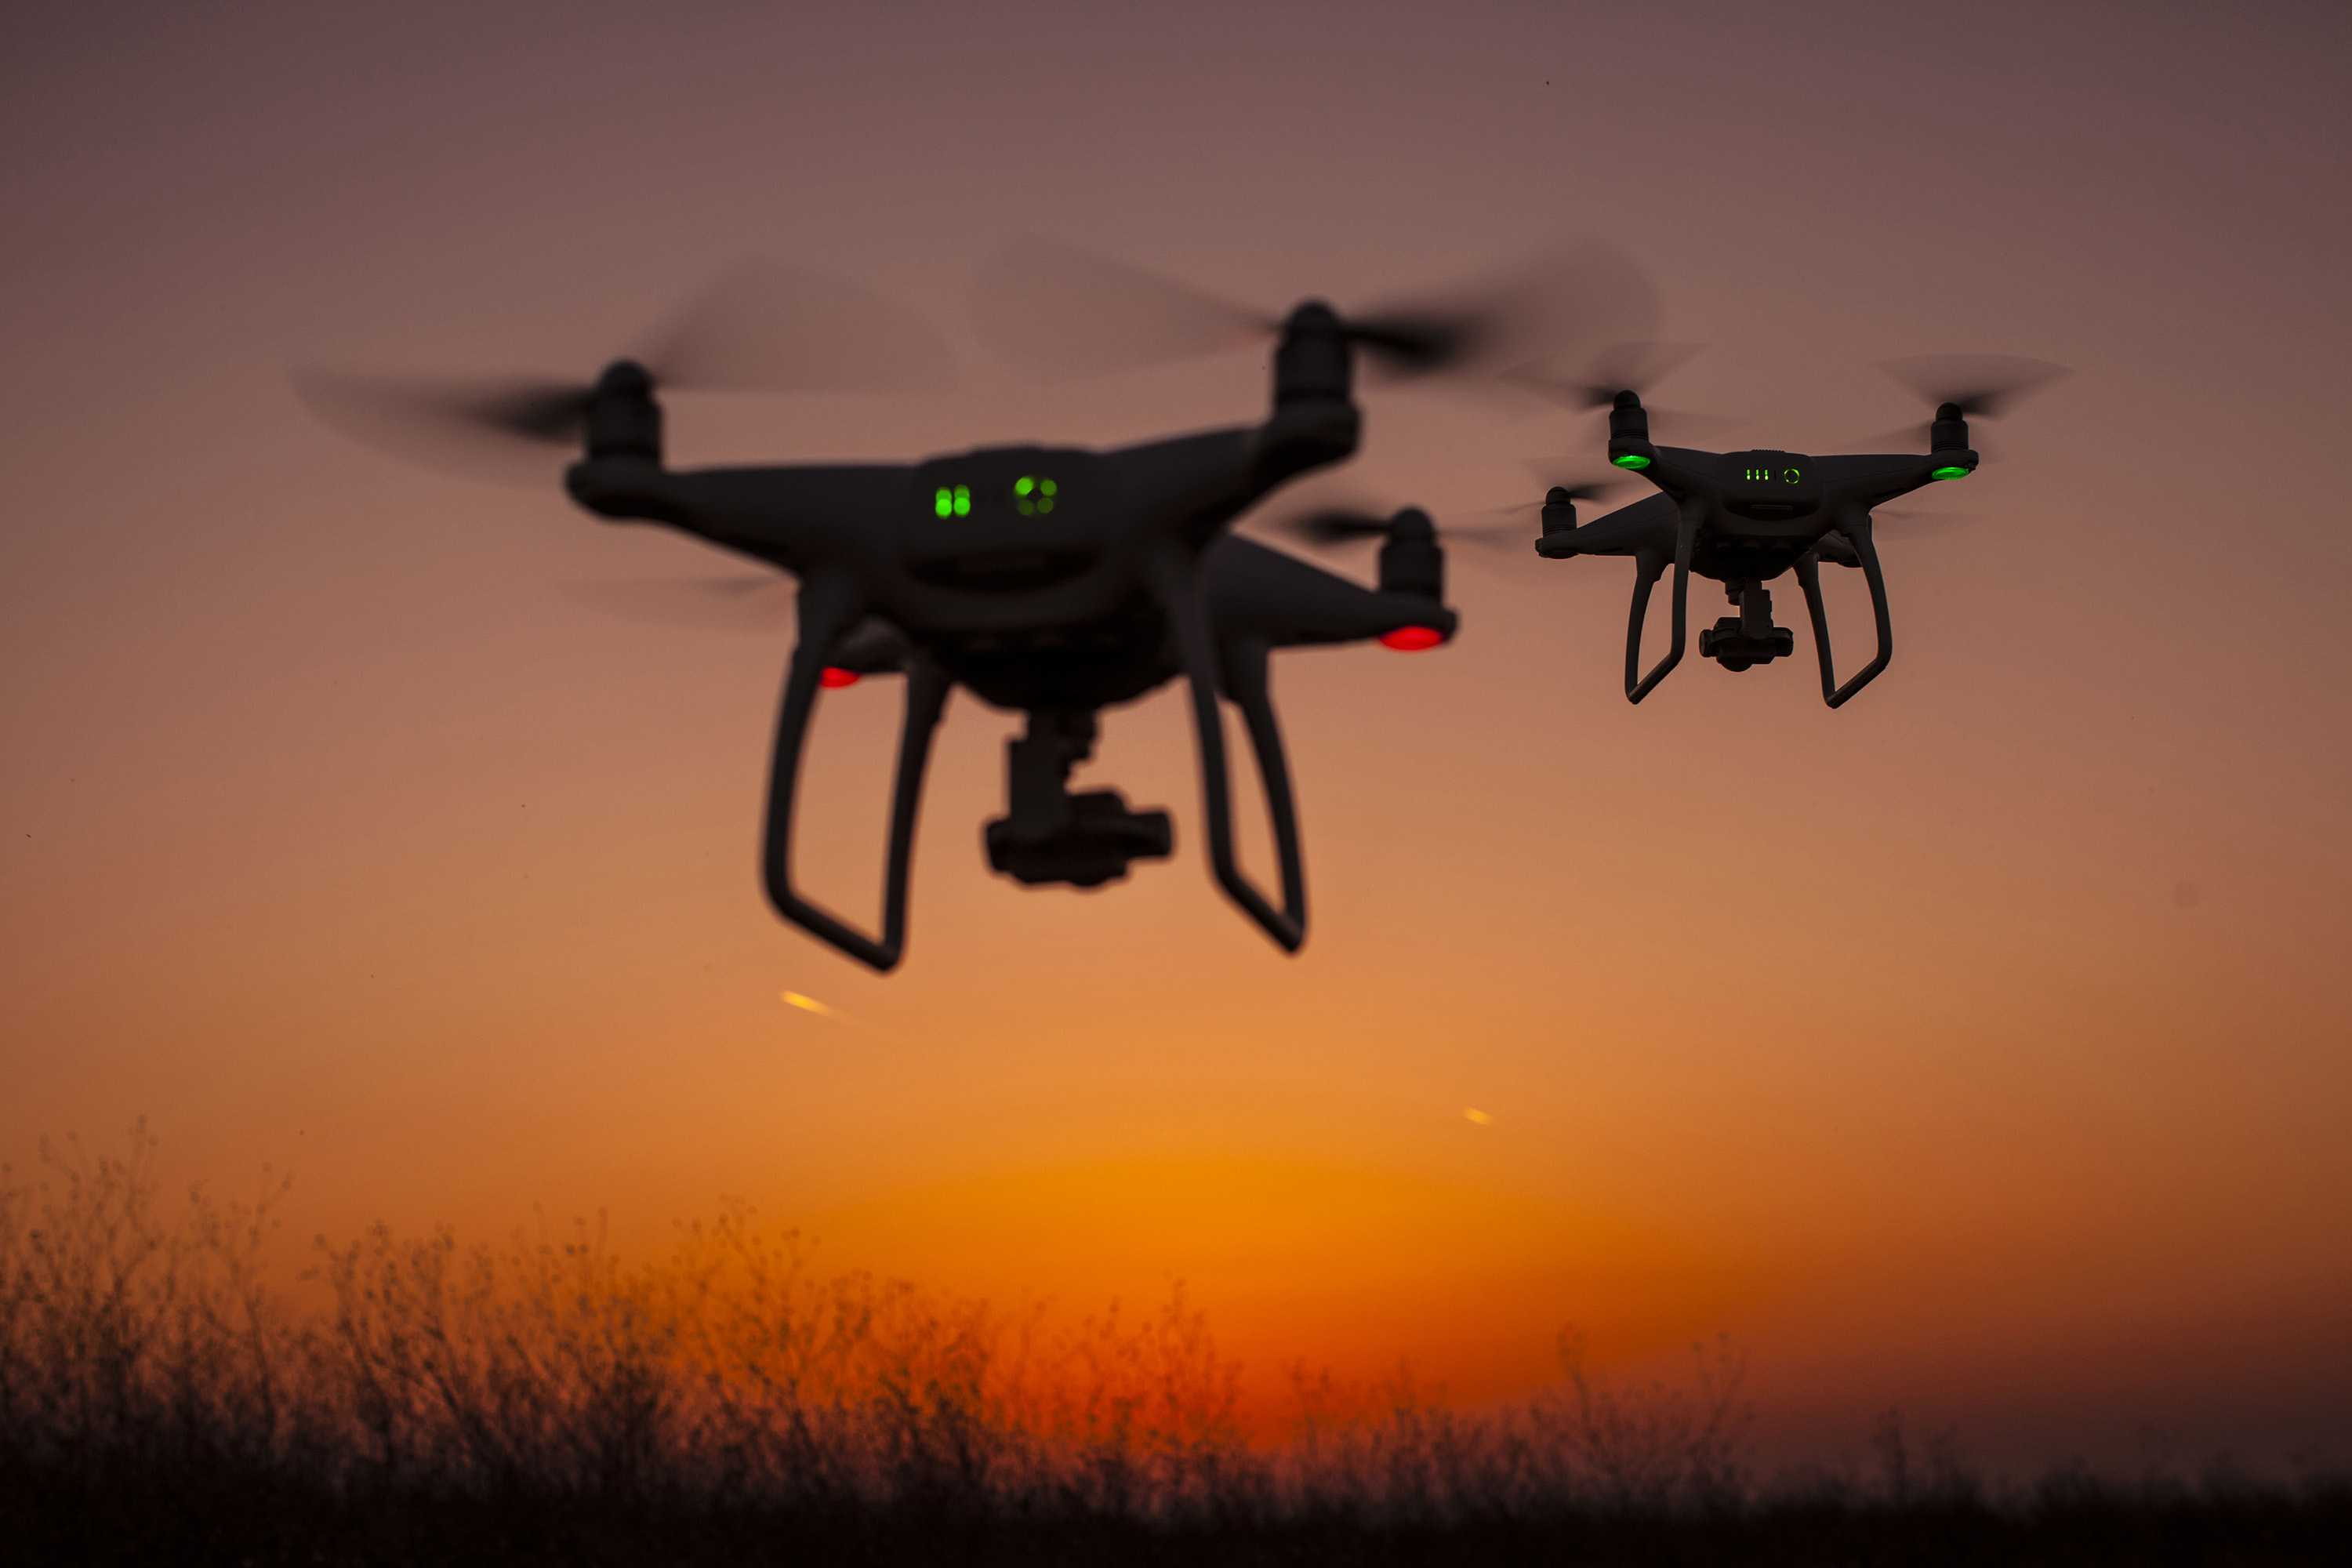 They're everywhere these days, aren't they? Having the chance to make a killer drone video that you an put up on the web later on might be tempting. But the NFL asks that you not give into temptation. (Dreamstime/TNS)